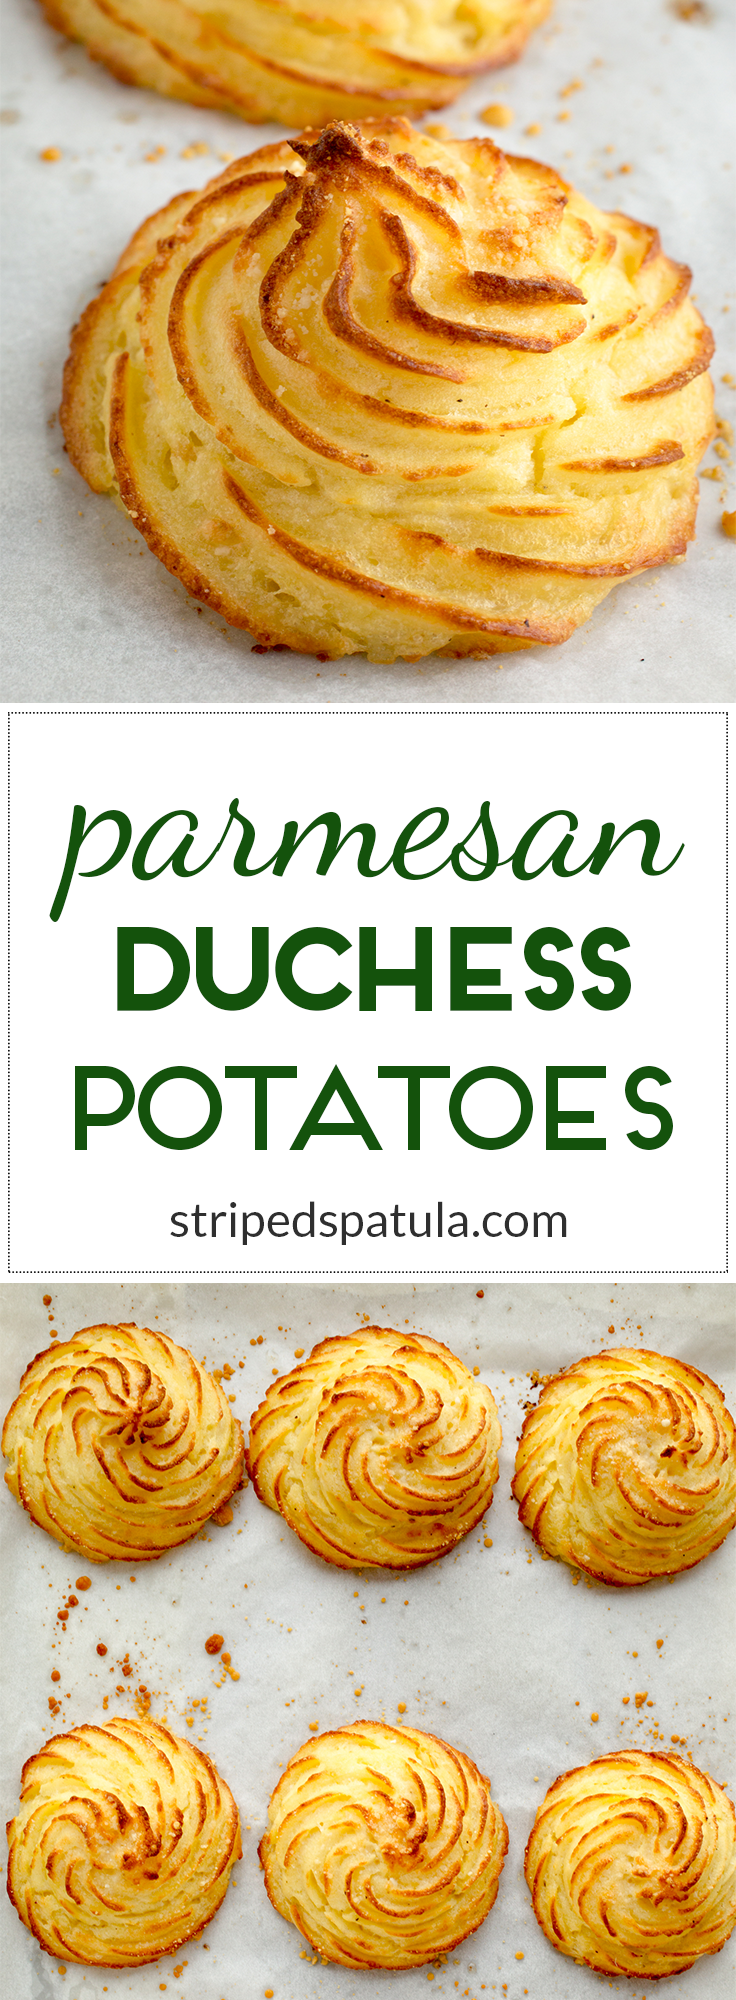 Duchess Potatoes With rich and creamy interiors and buttery, crispy edges, these beautiful potatoes are an elegant (and easy!) addition to any holiday feast.With rich and creamy interiors and buttery, crispy edges, these beautiful potatoes are an elegant (and easy!) addition to any holiday feast.